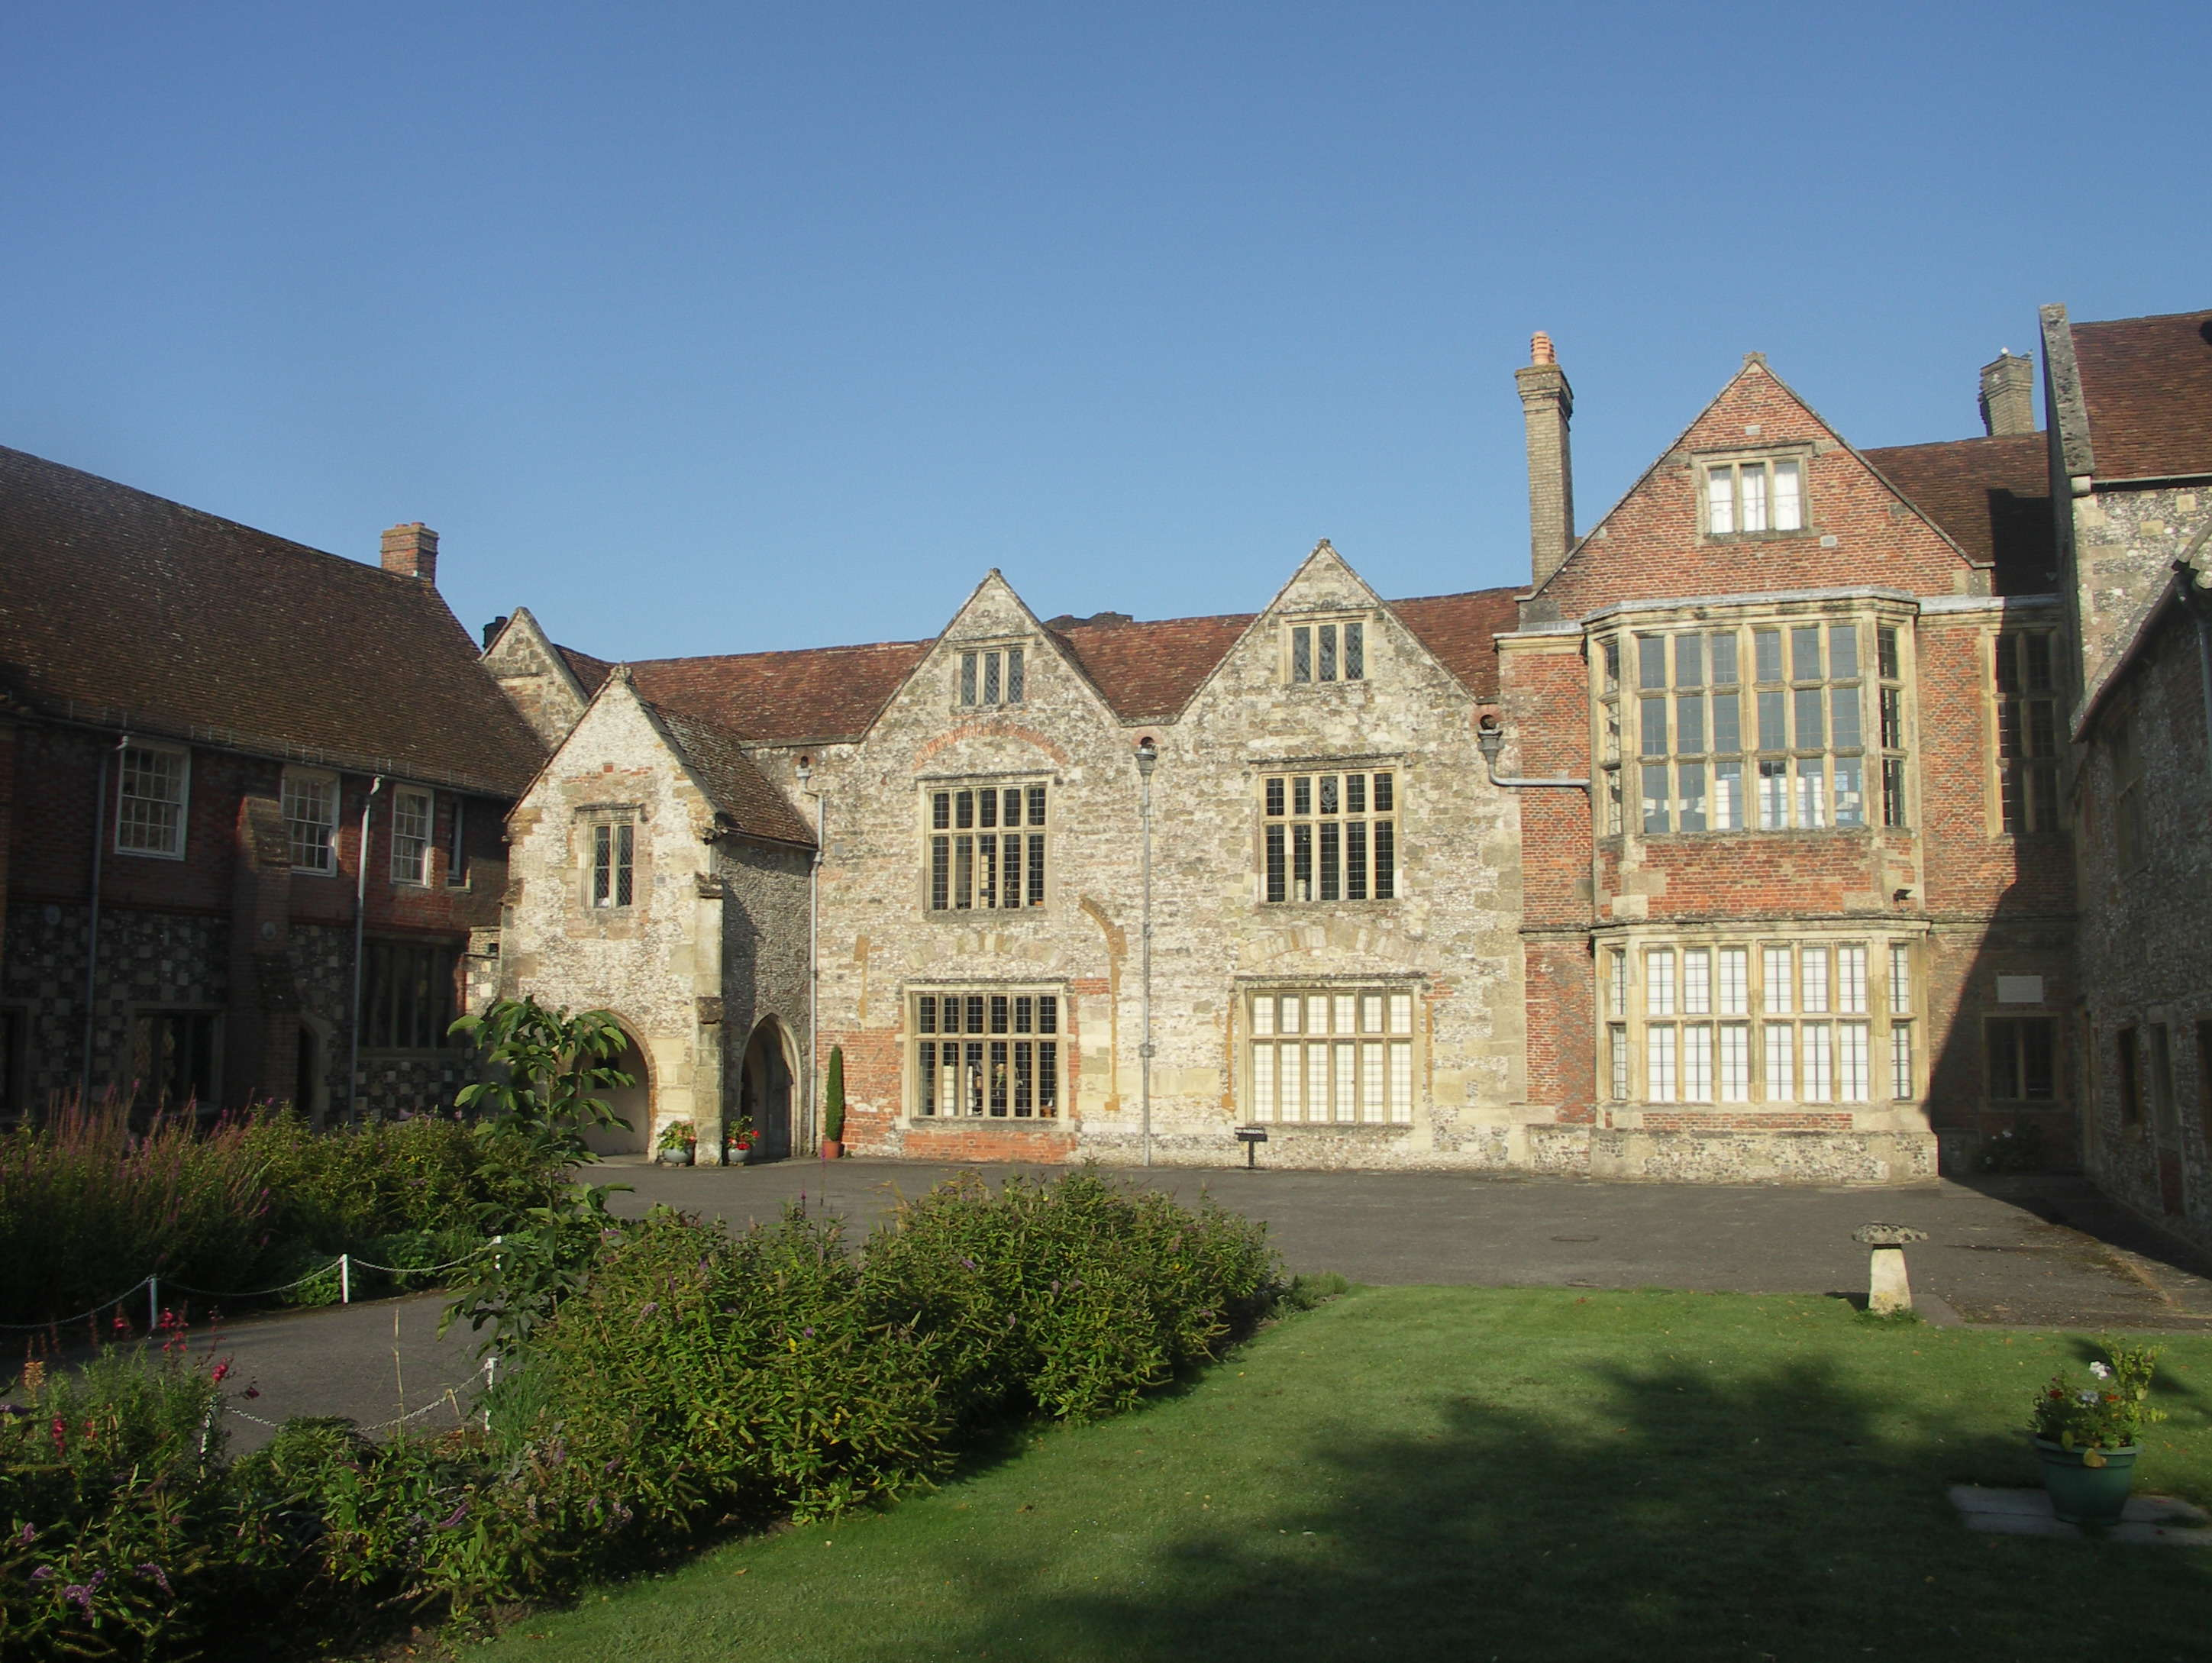 Reasons to wend your way in Wiltshire, England - The Salisbury Museum